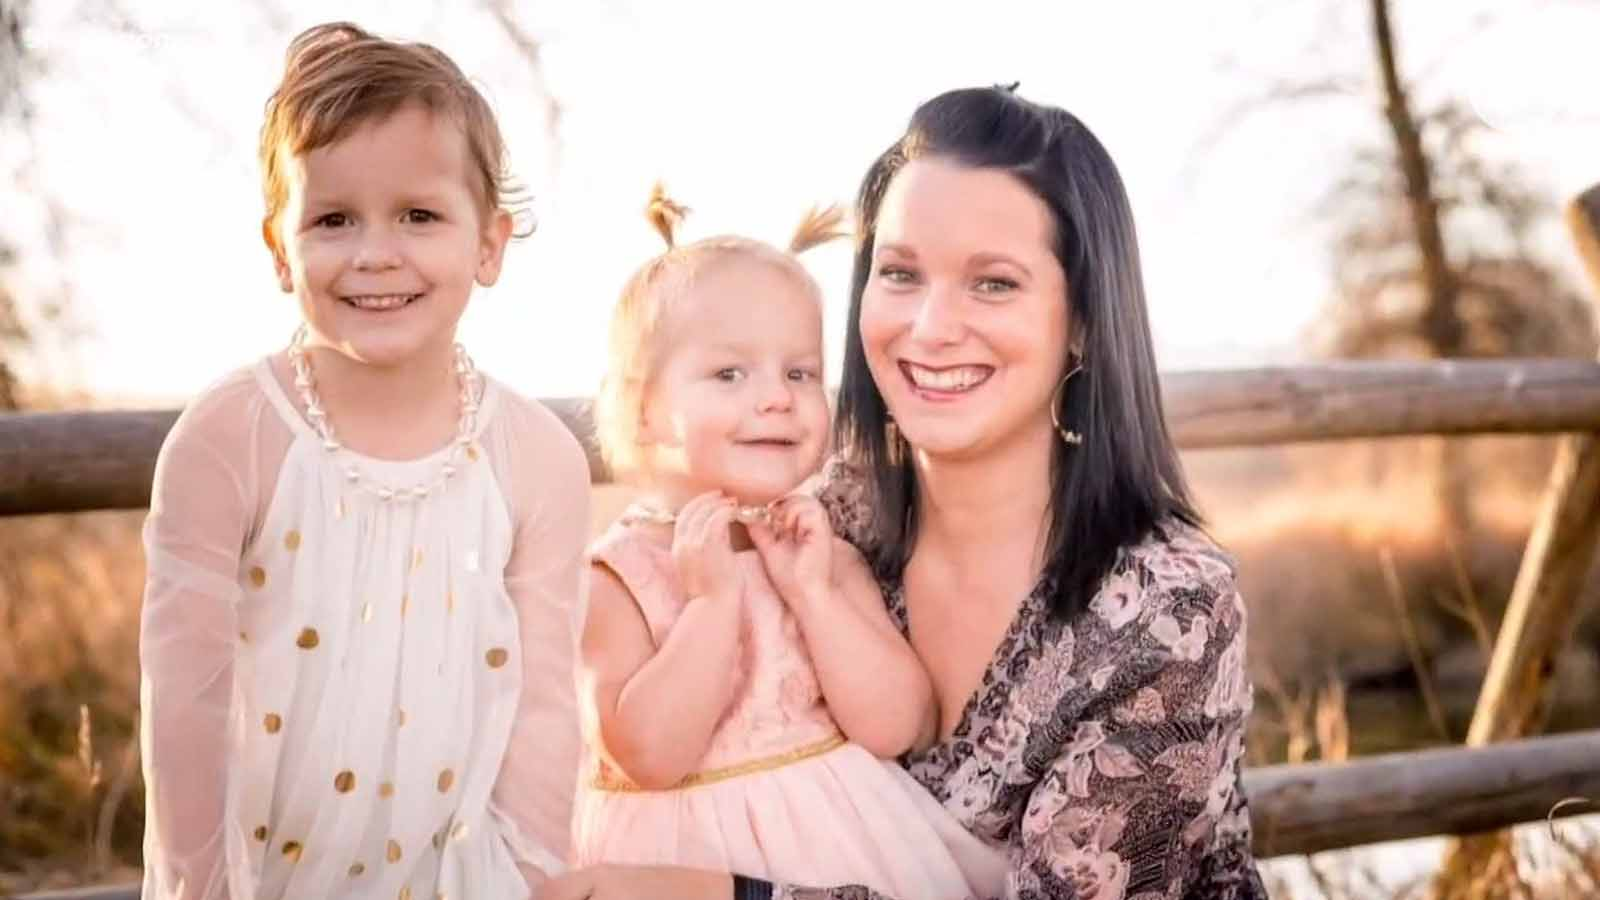 'American Murder: The Family Next Door' attempts to shine a new light on the murders Chris Watts committed against his family.